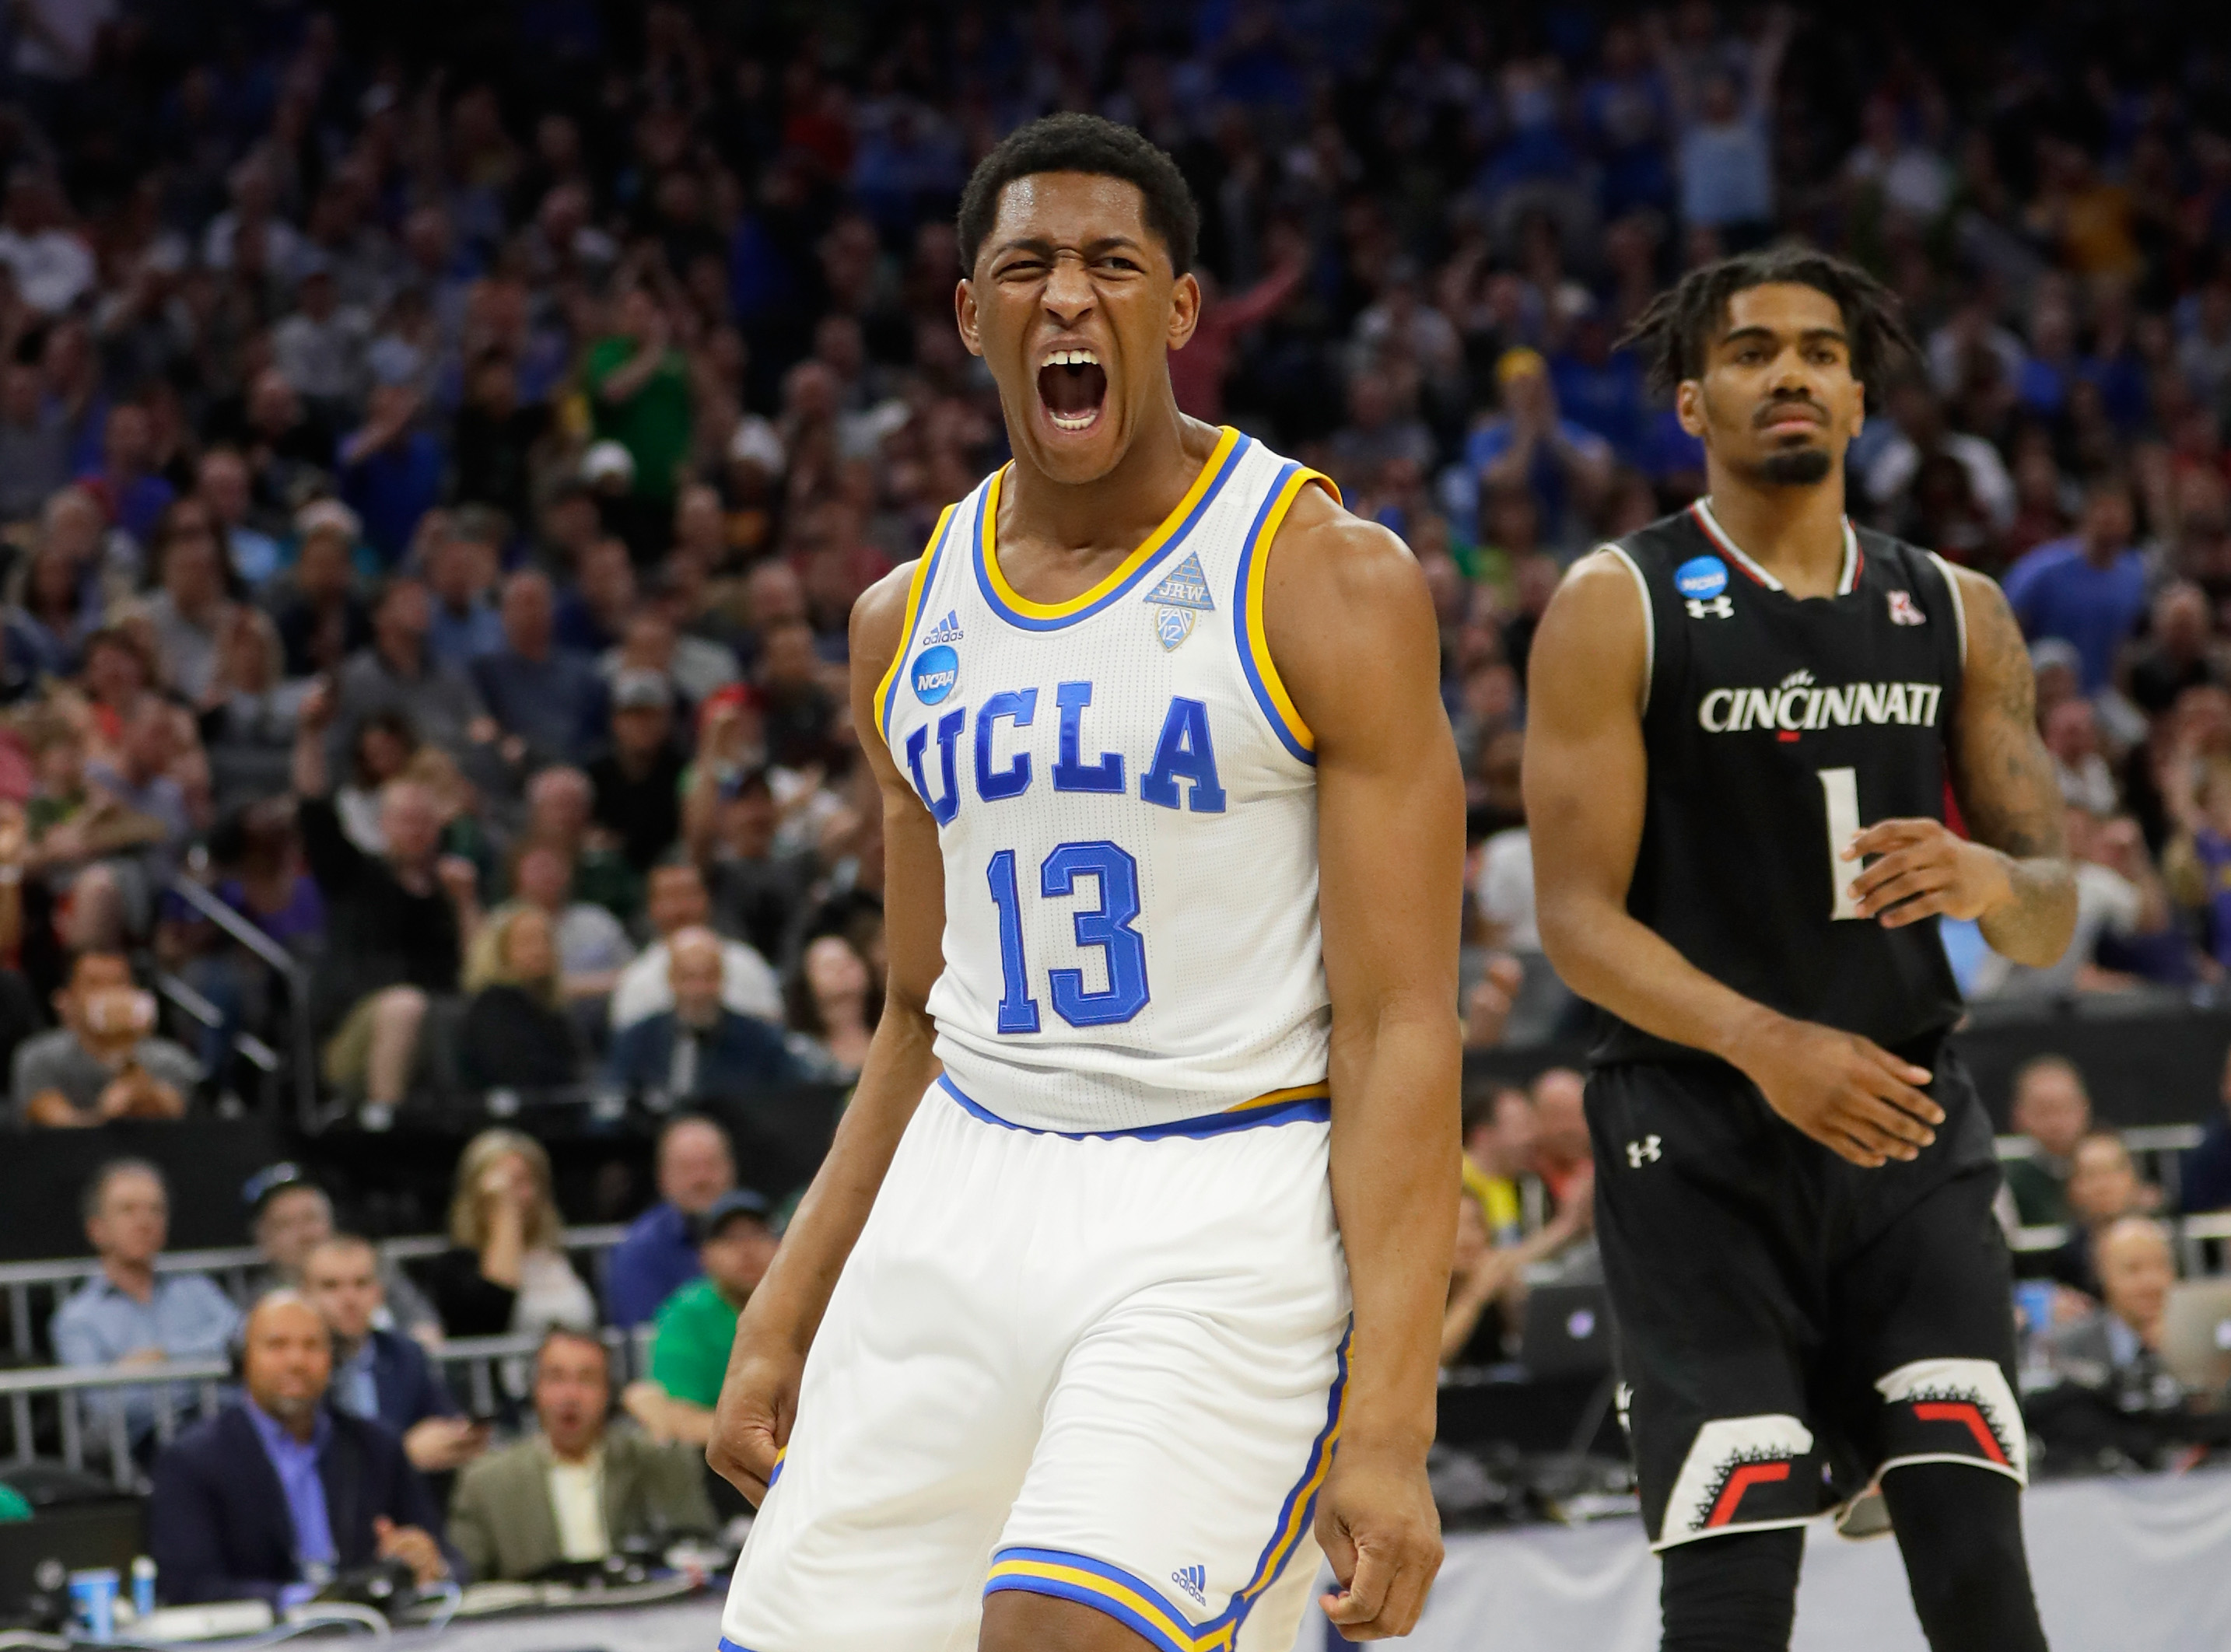 ncaa basketball tournament predictions against the spread odds betting